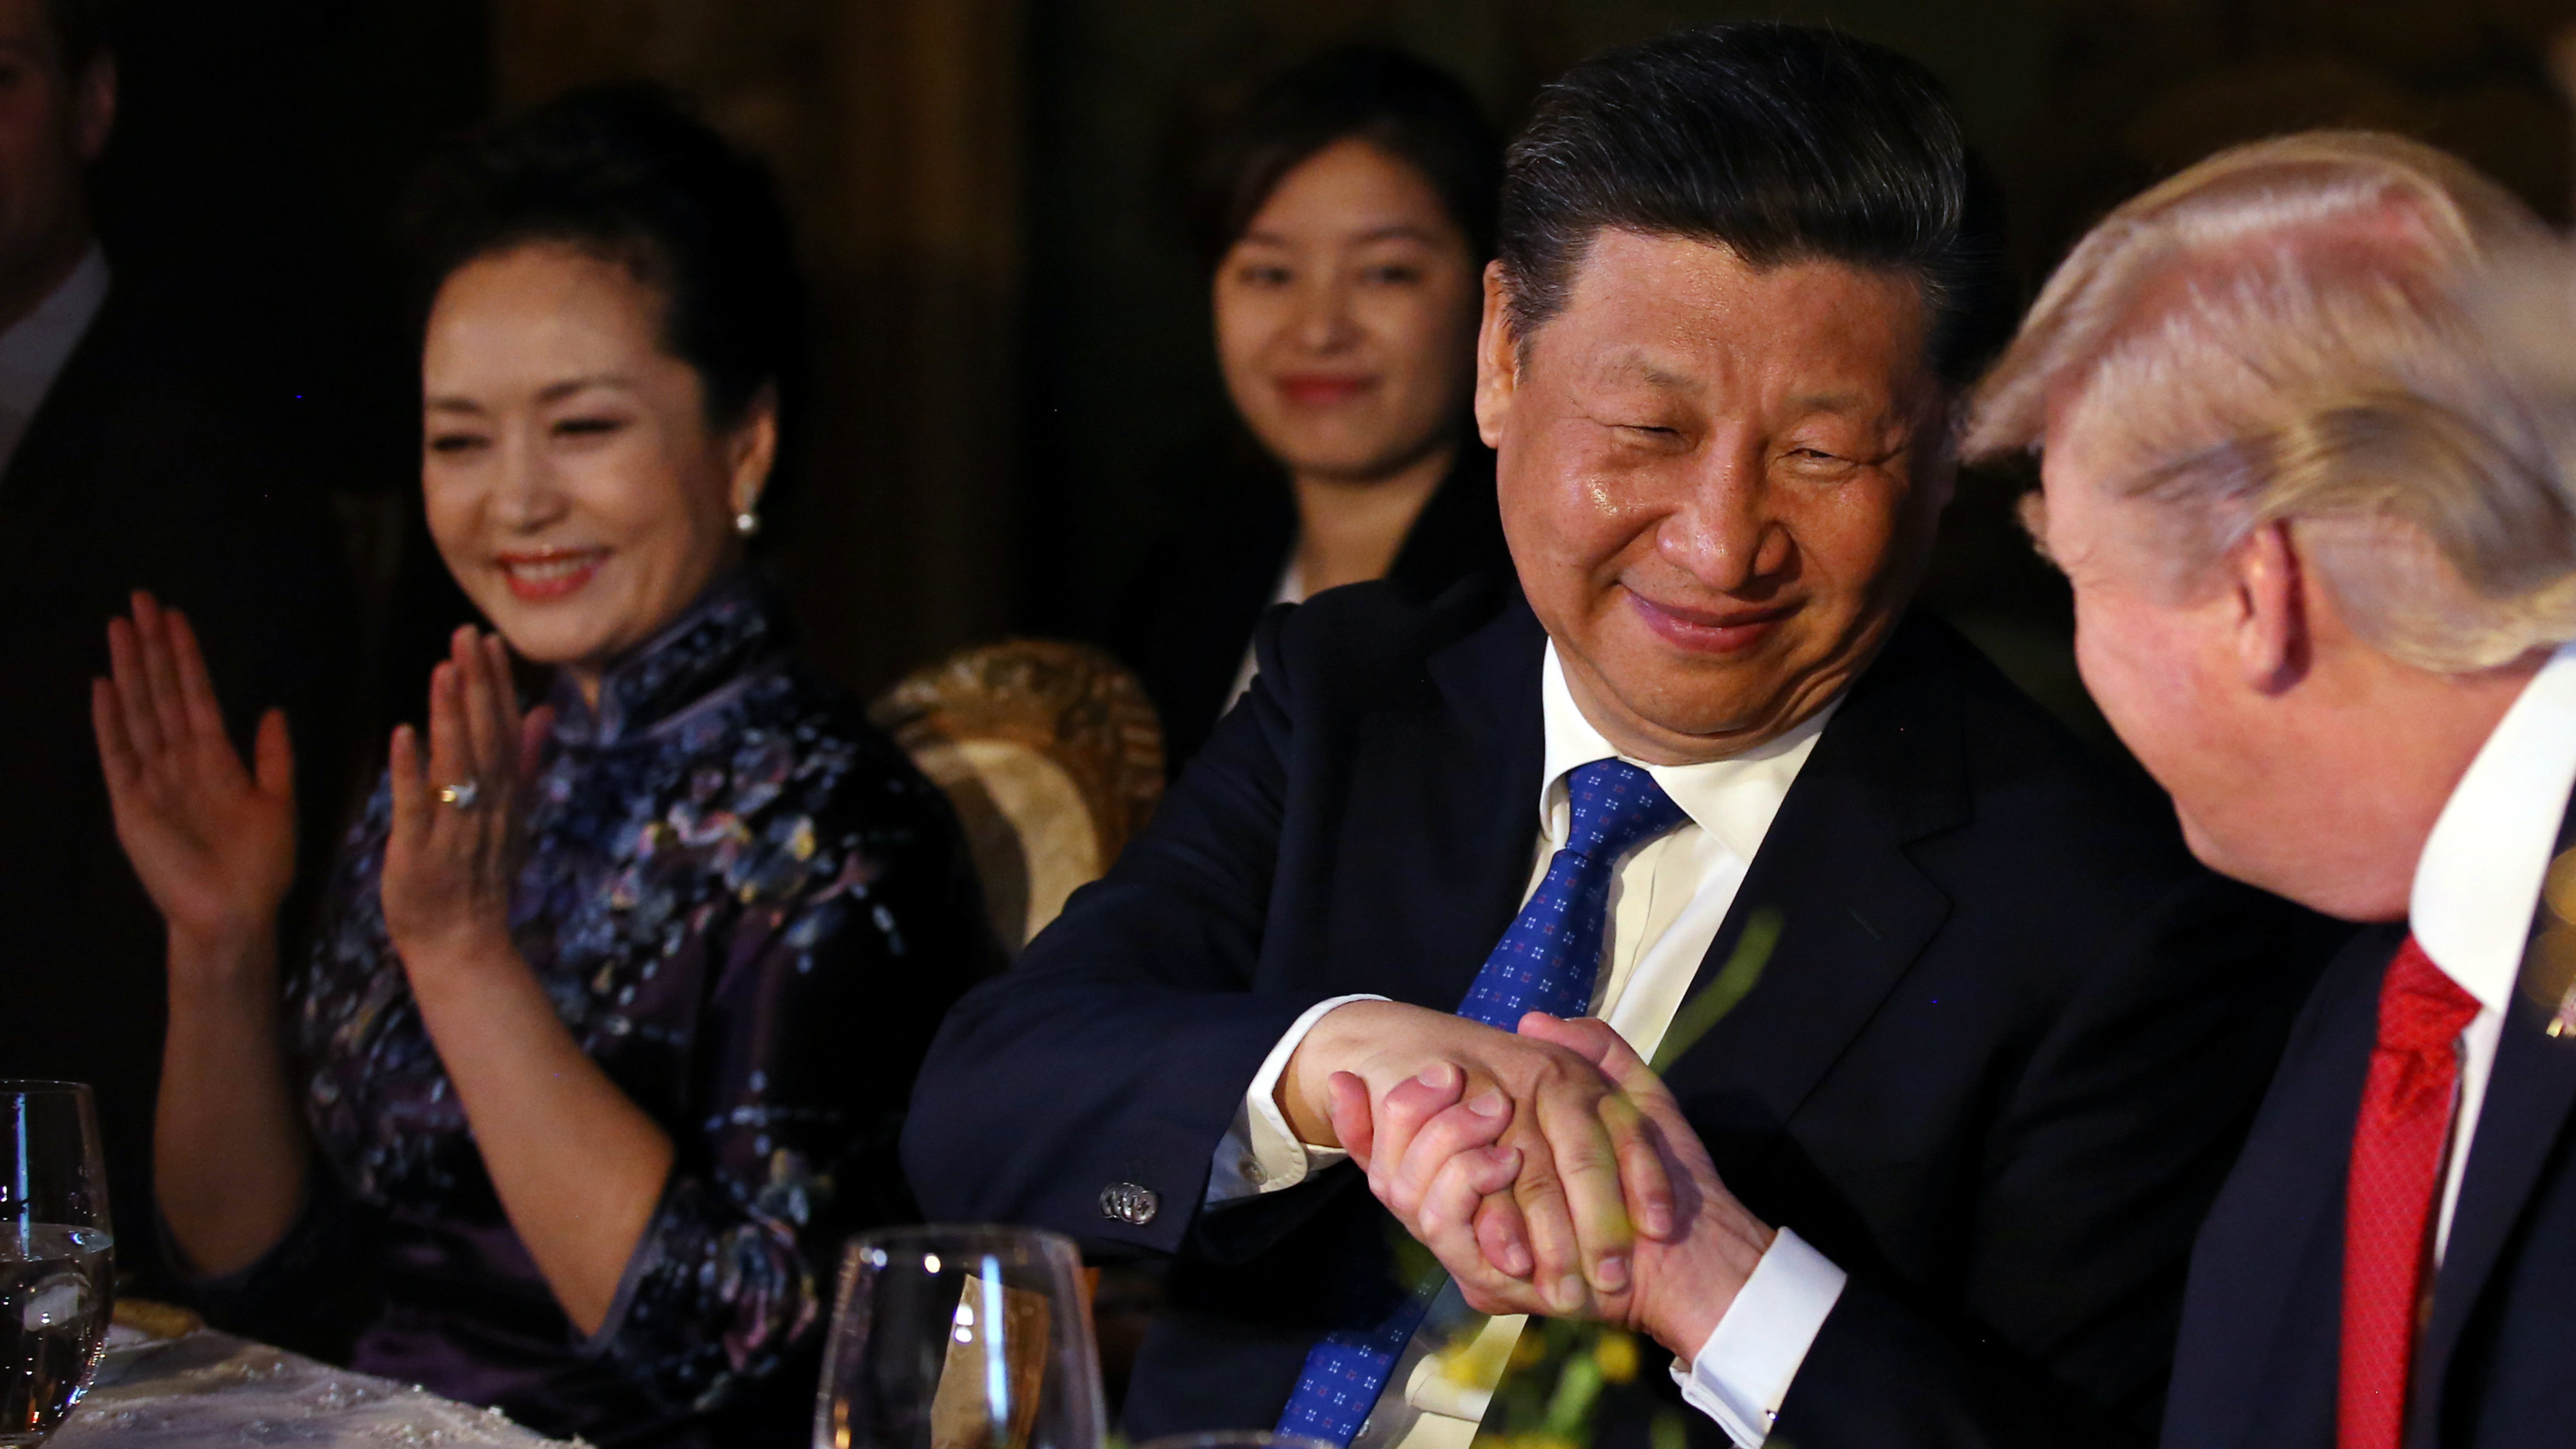 Chinese President Xi Jinping shakes hands with U.S. President Donald Trump as he is accompanied by China's first lady Peng Liyuan (L) during a dinner at the start of a summit between President Trump and President Xi at Trump's Mar-a-Lago estate in West Palm Beach, Florida, U.S., April 6, 2017. REUTERS/Carlos Barria